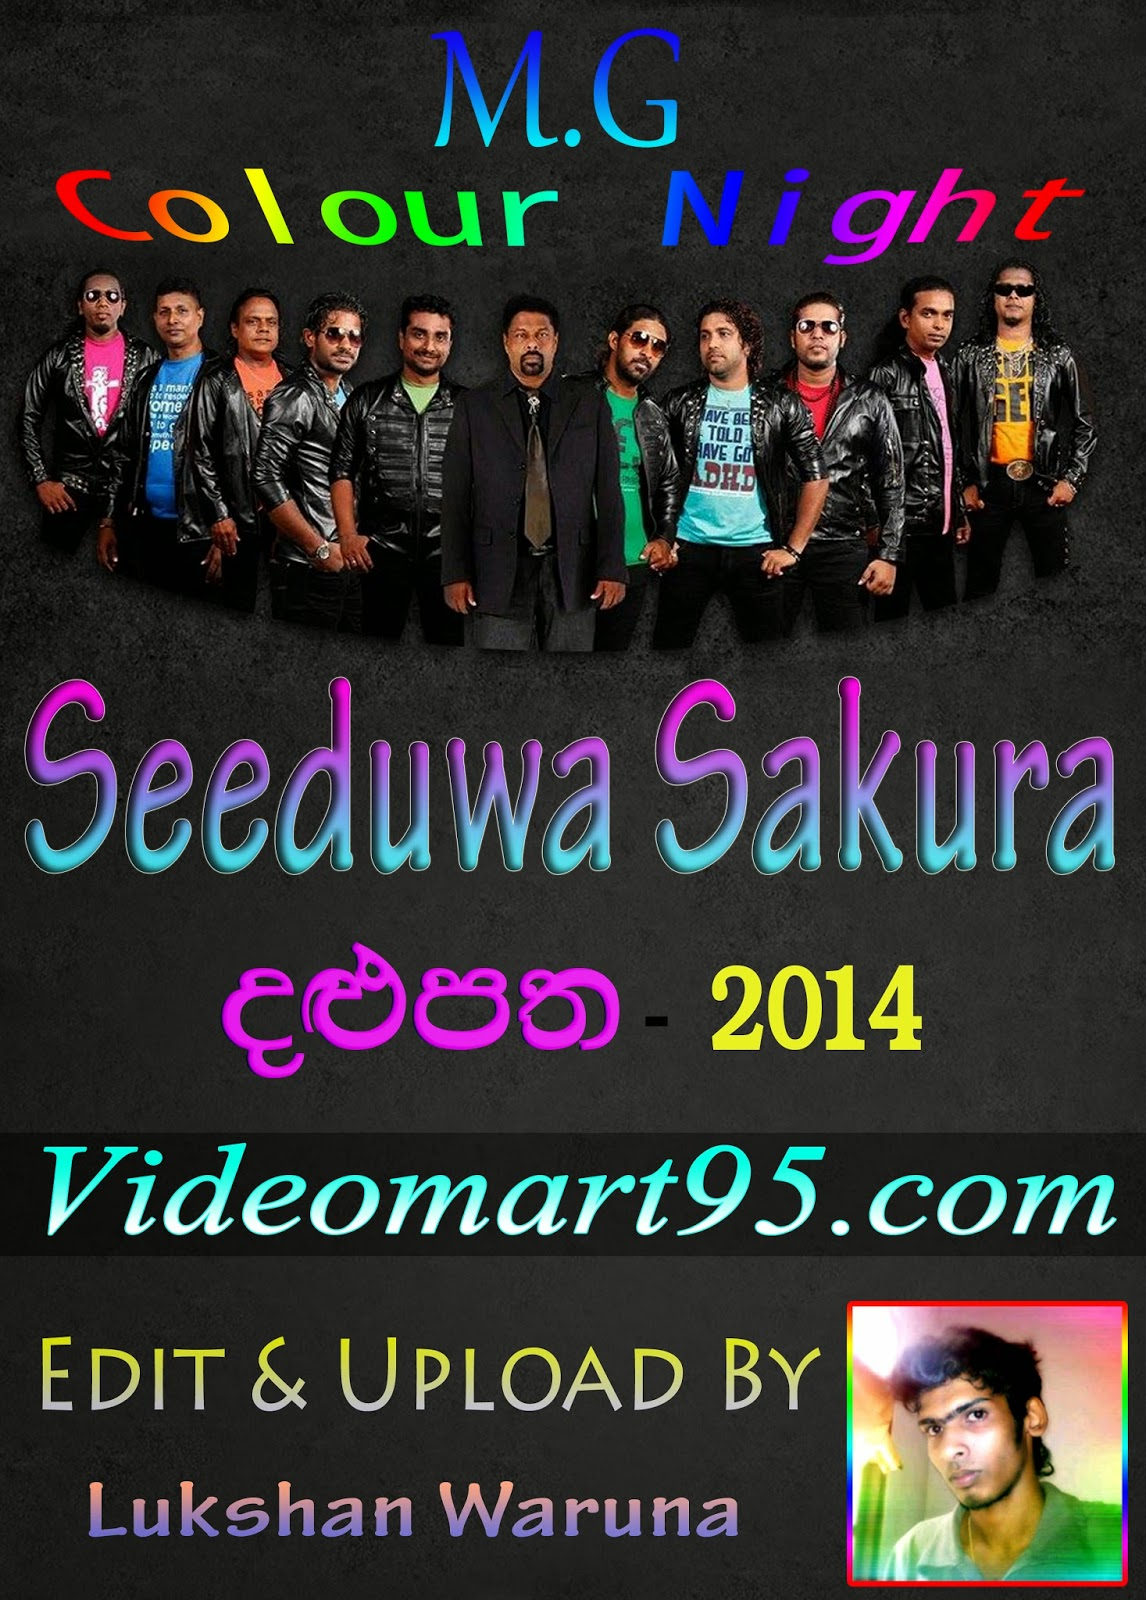 SEEDUWA SAKURA LIVE IN DALUPATHA 2014